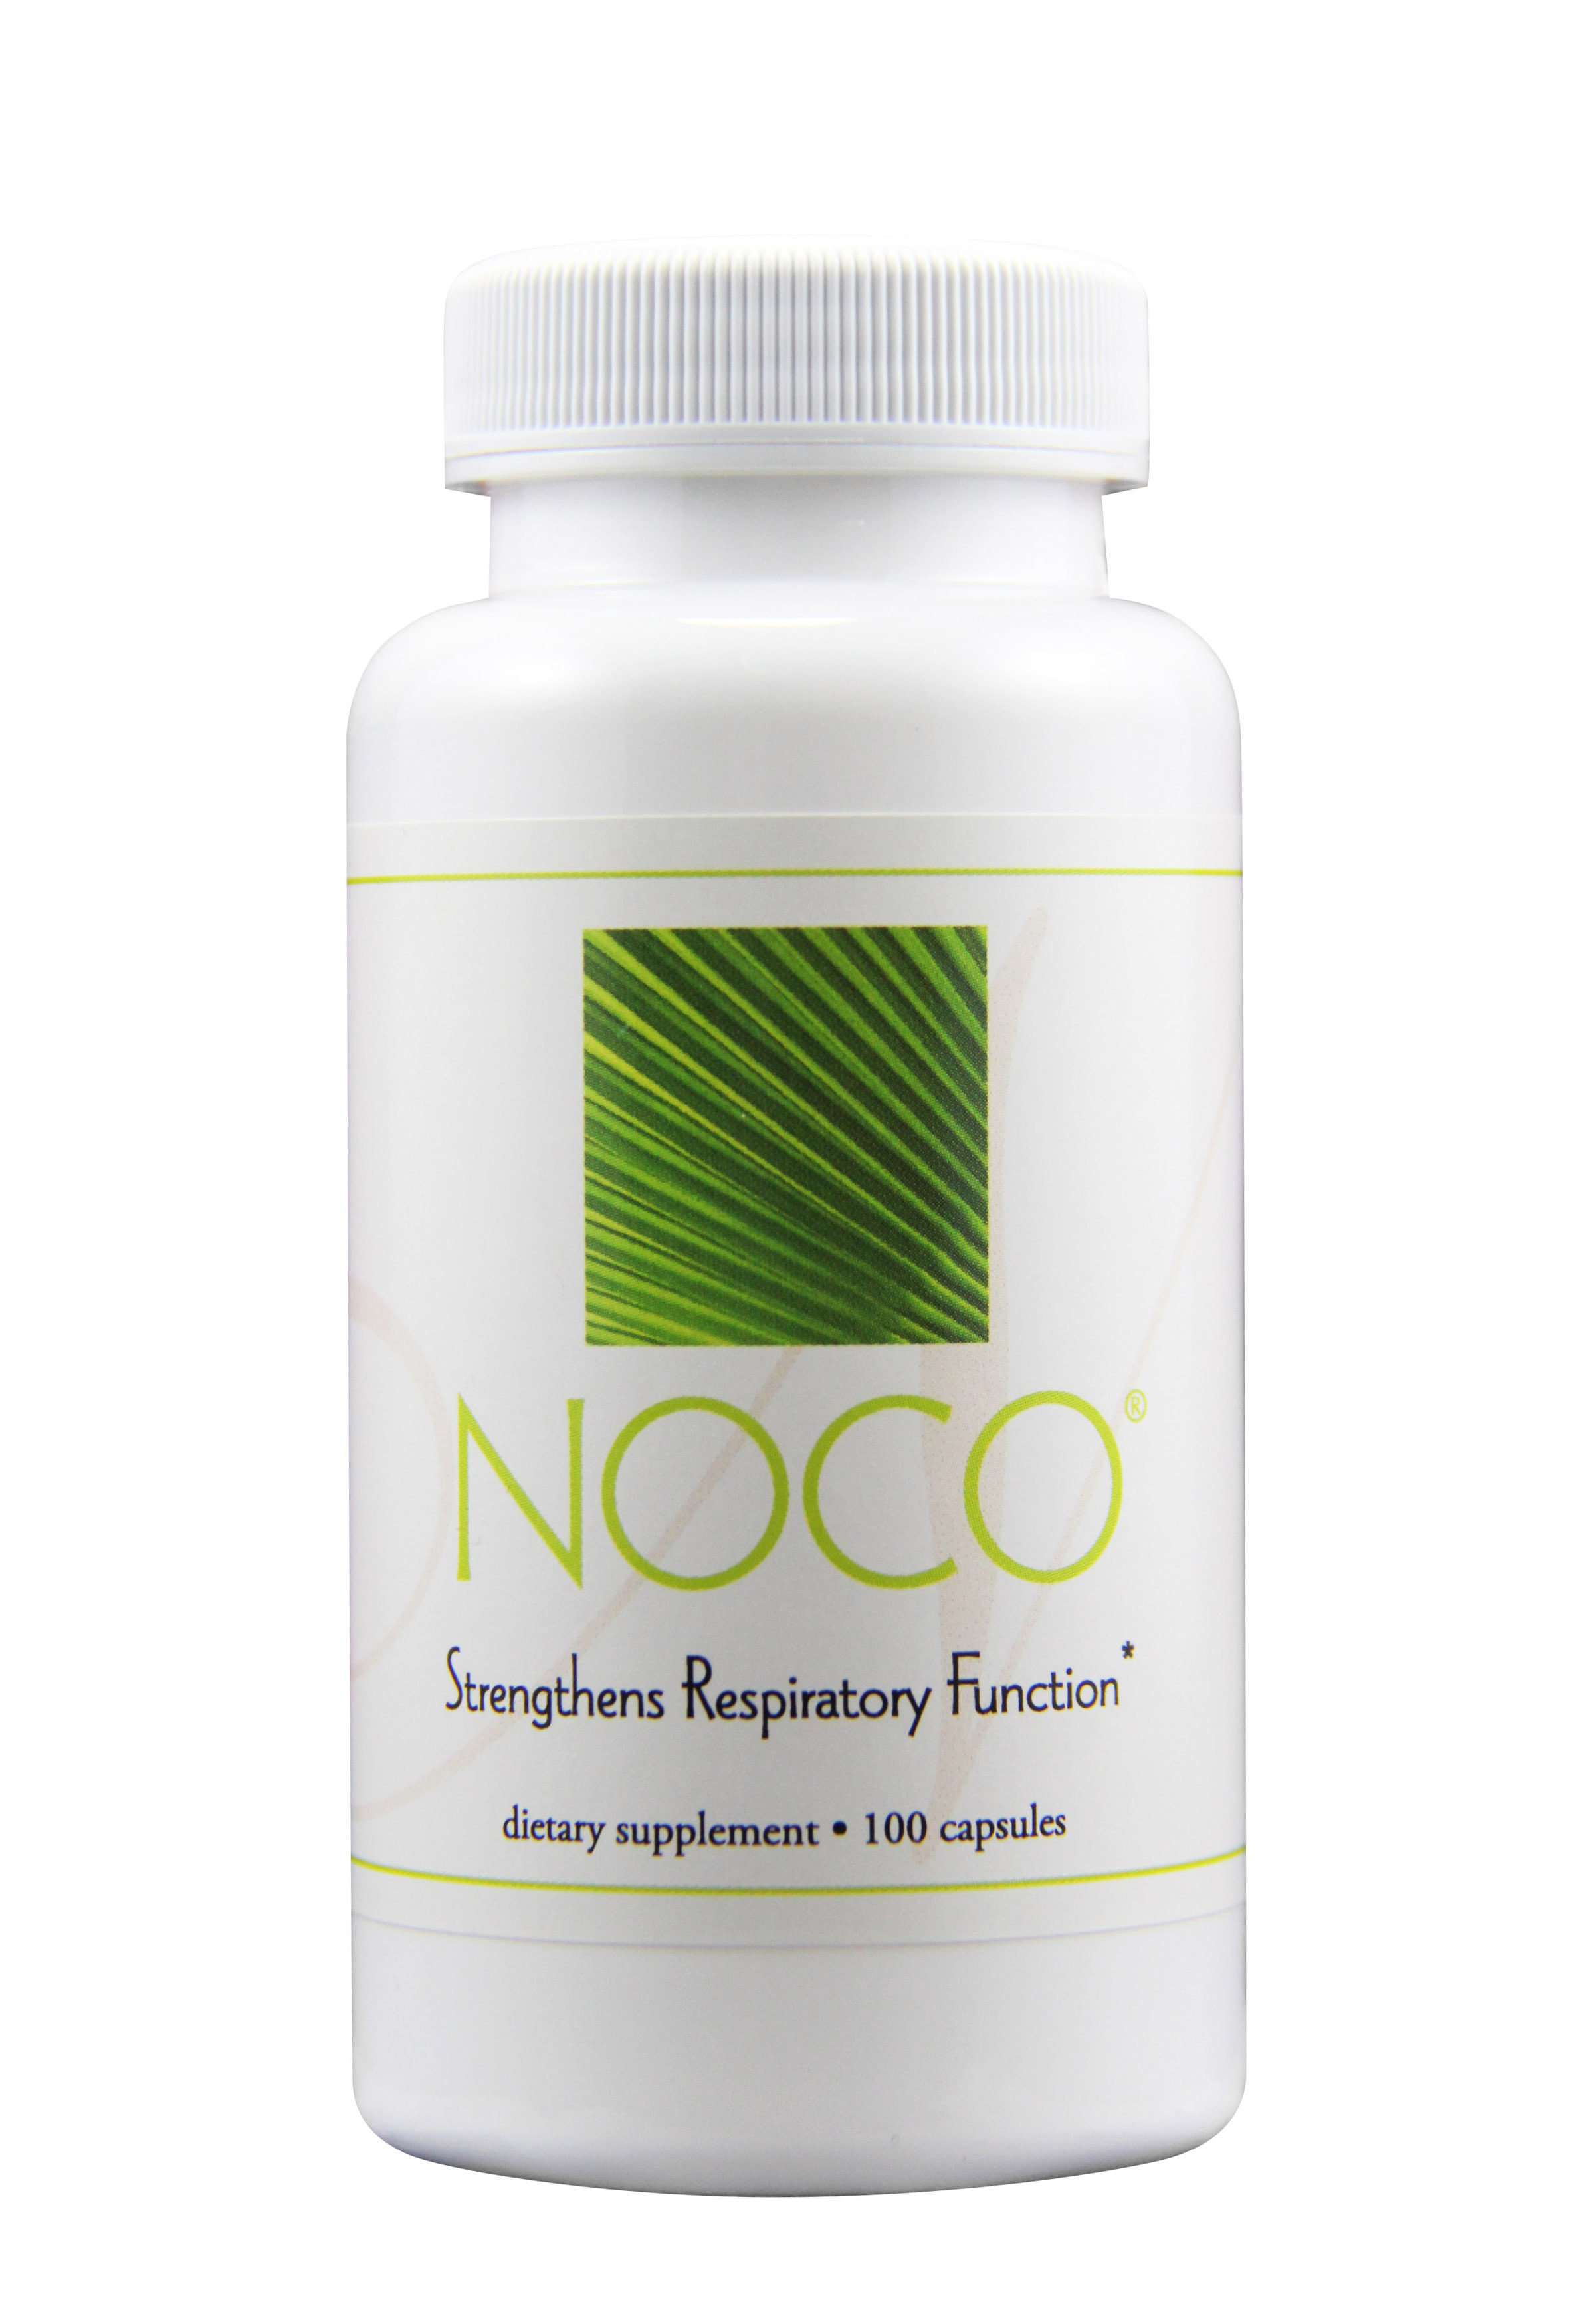 NOCO - HELPS TO SUPPORT THE RESPIRATORY SYSTEM*Featured Ingredients: Panax Ginseng, Chinese Red Date, Licorice Root, Reishi, Peppermint, Chrysanthemum